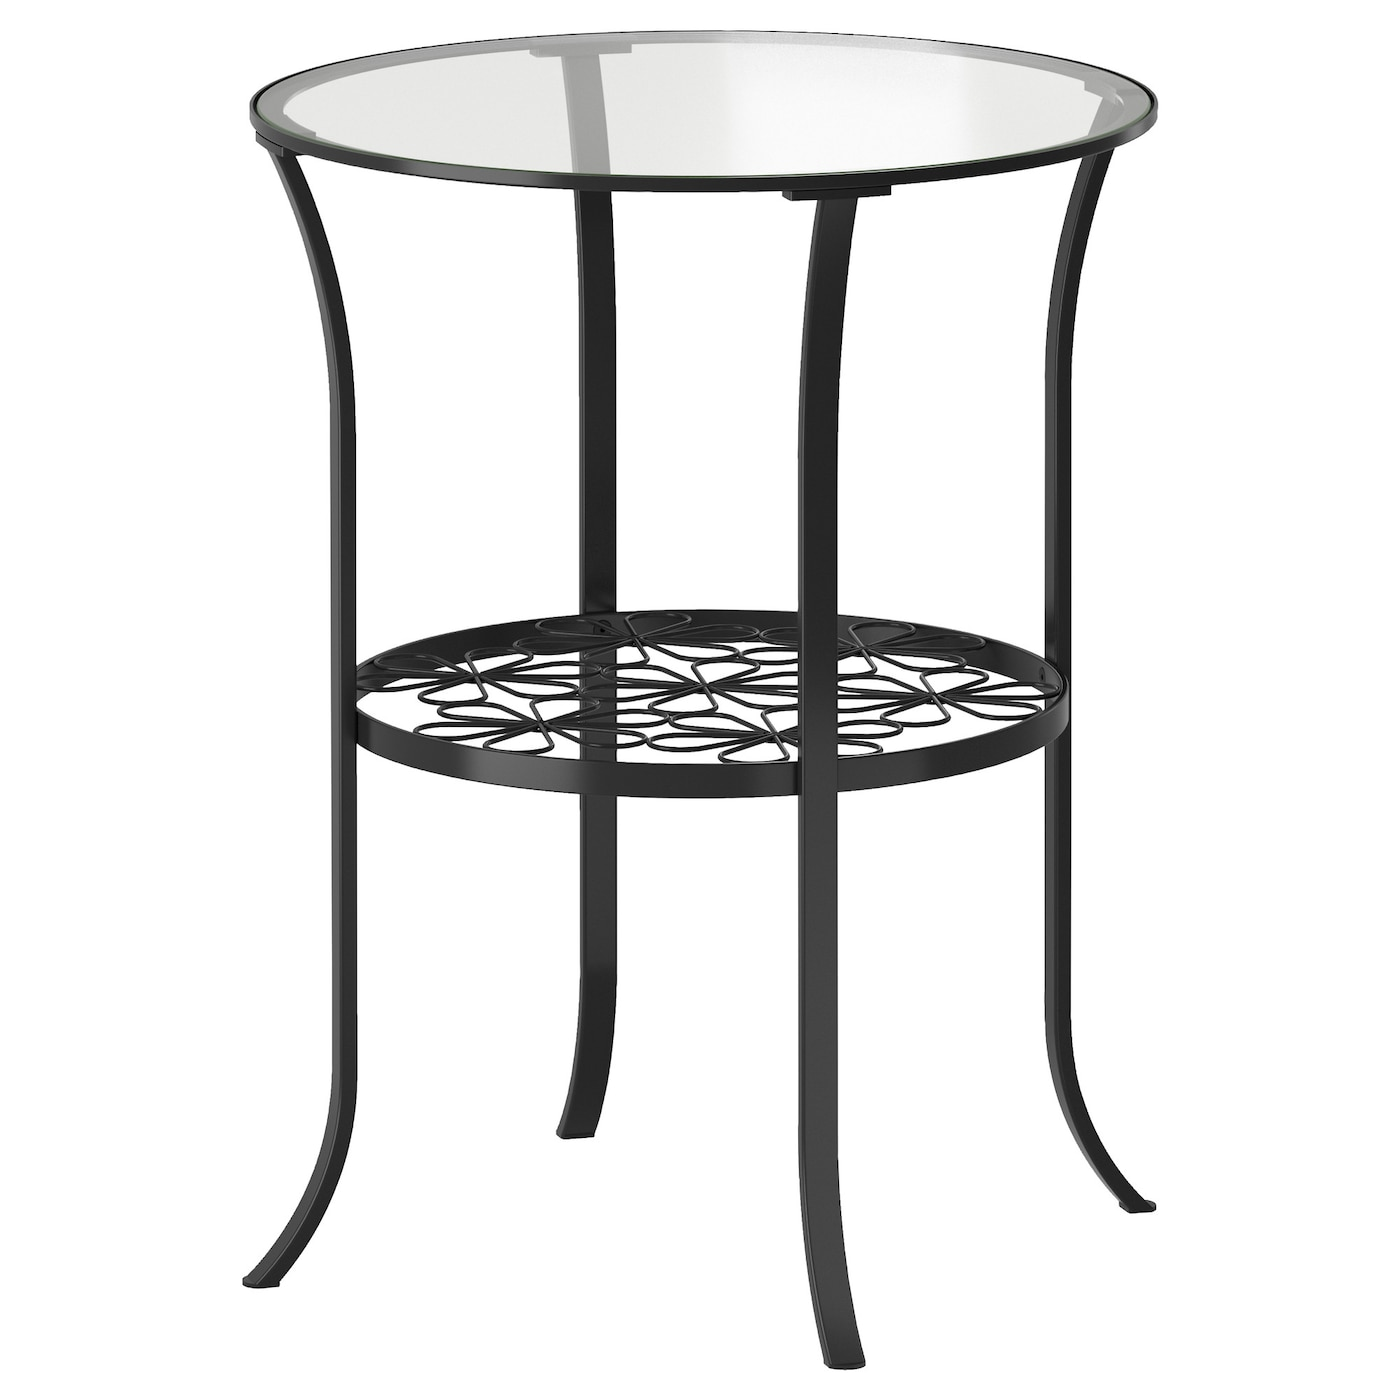 klingsbo side table black clear glass 49x60 cm ikea